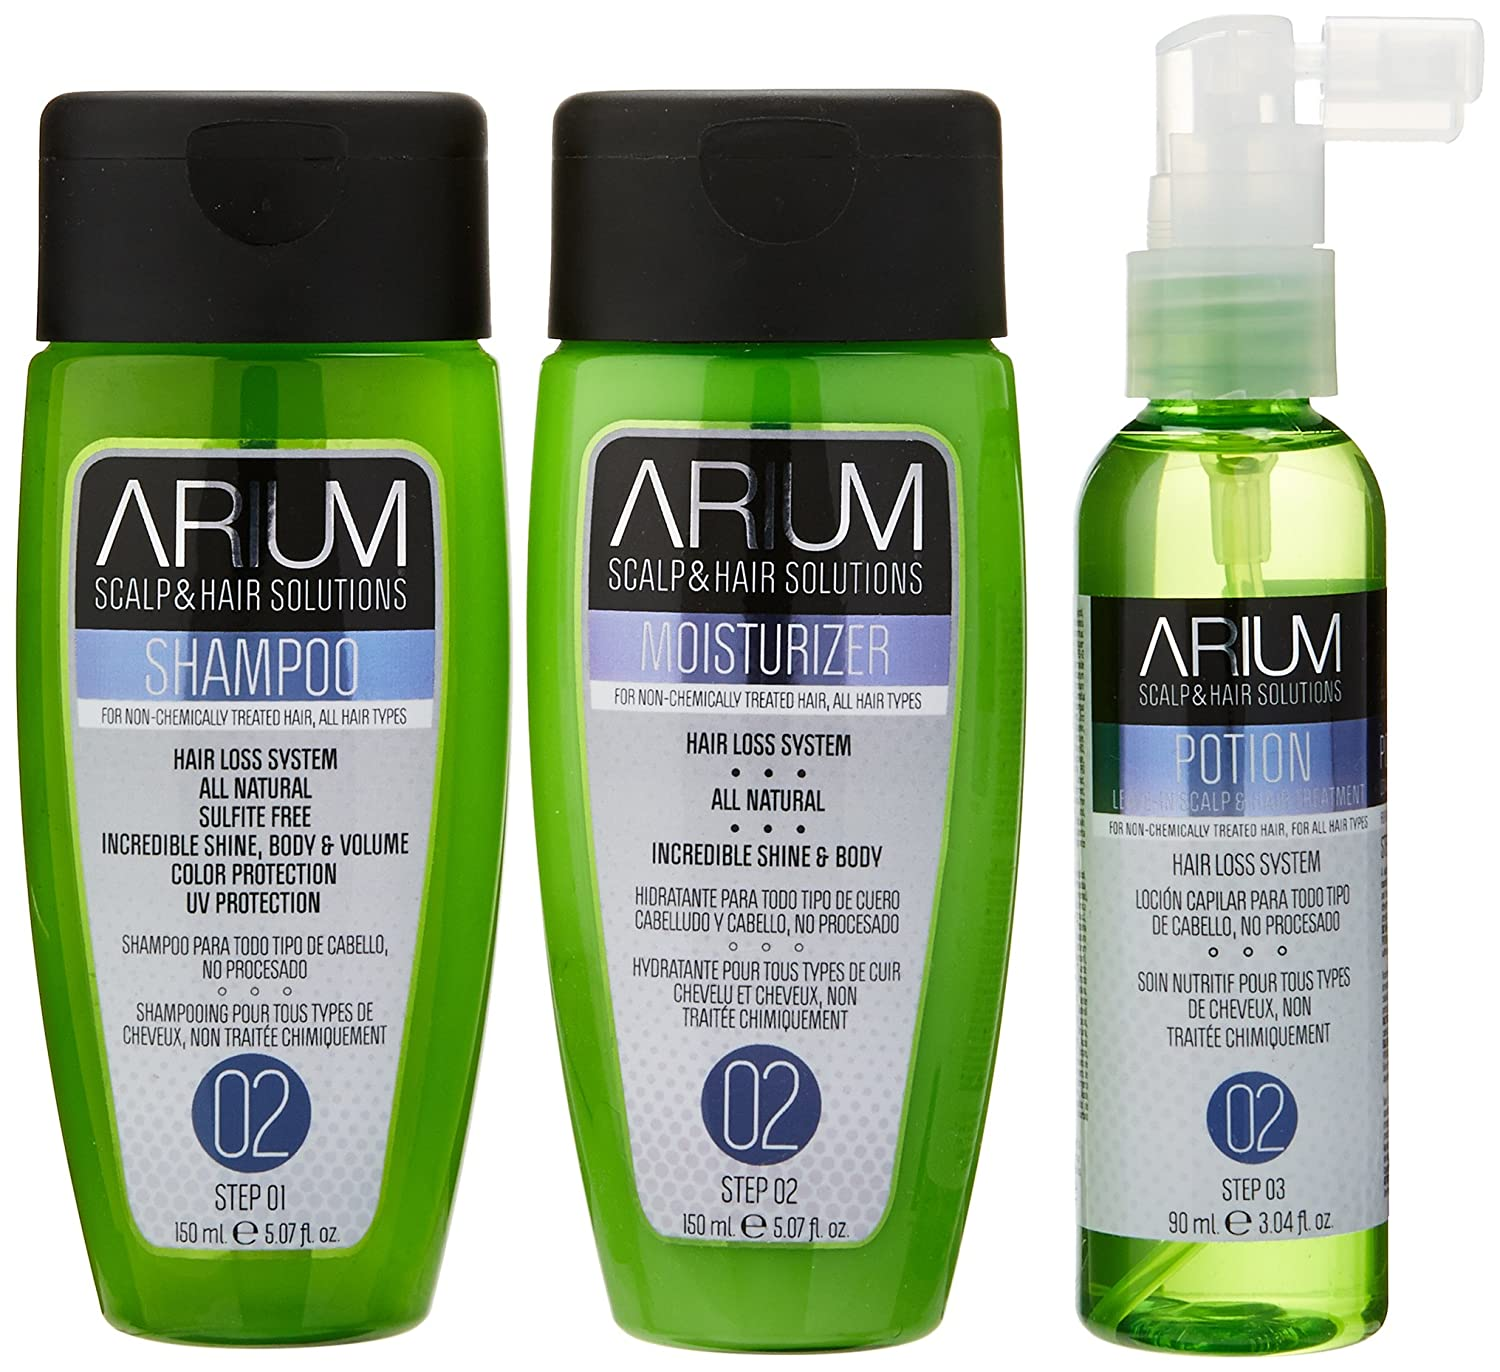 Amazon.com: ARIUM SCALP & HAIR SOLUTIONS Scalp & Hair Growth Trio O2: Health & Personal Care